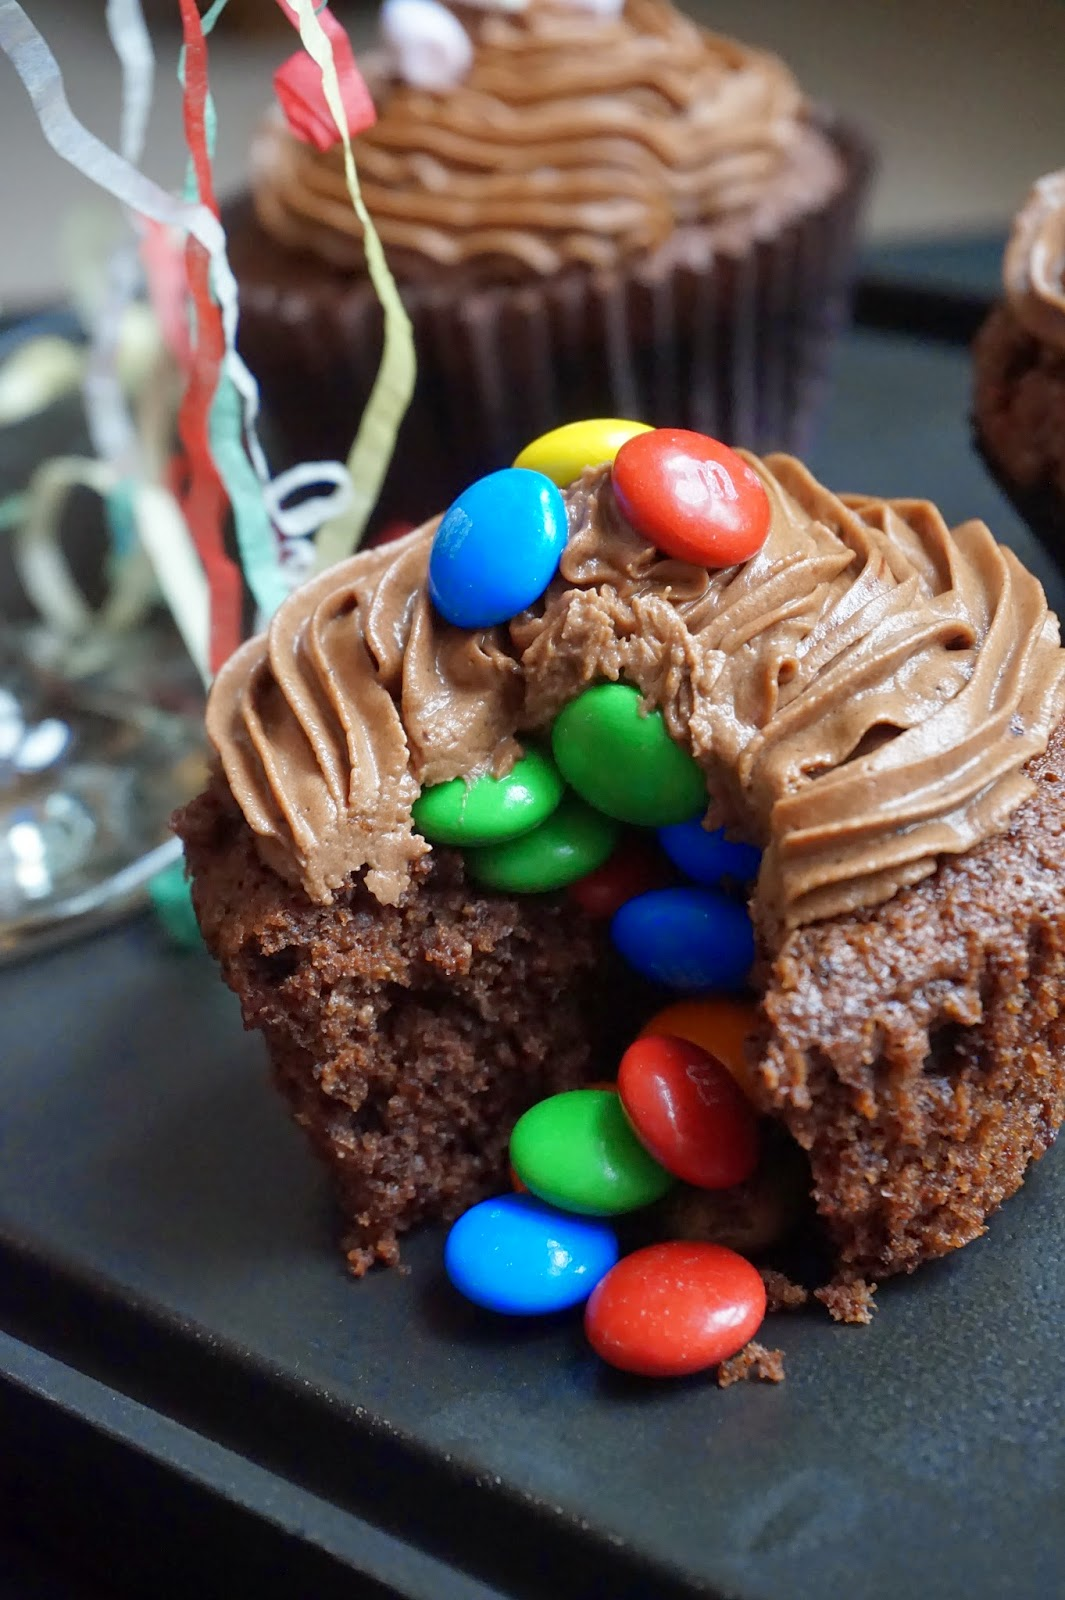 A Muffin with M&M's cascading out